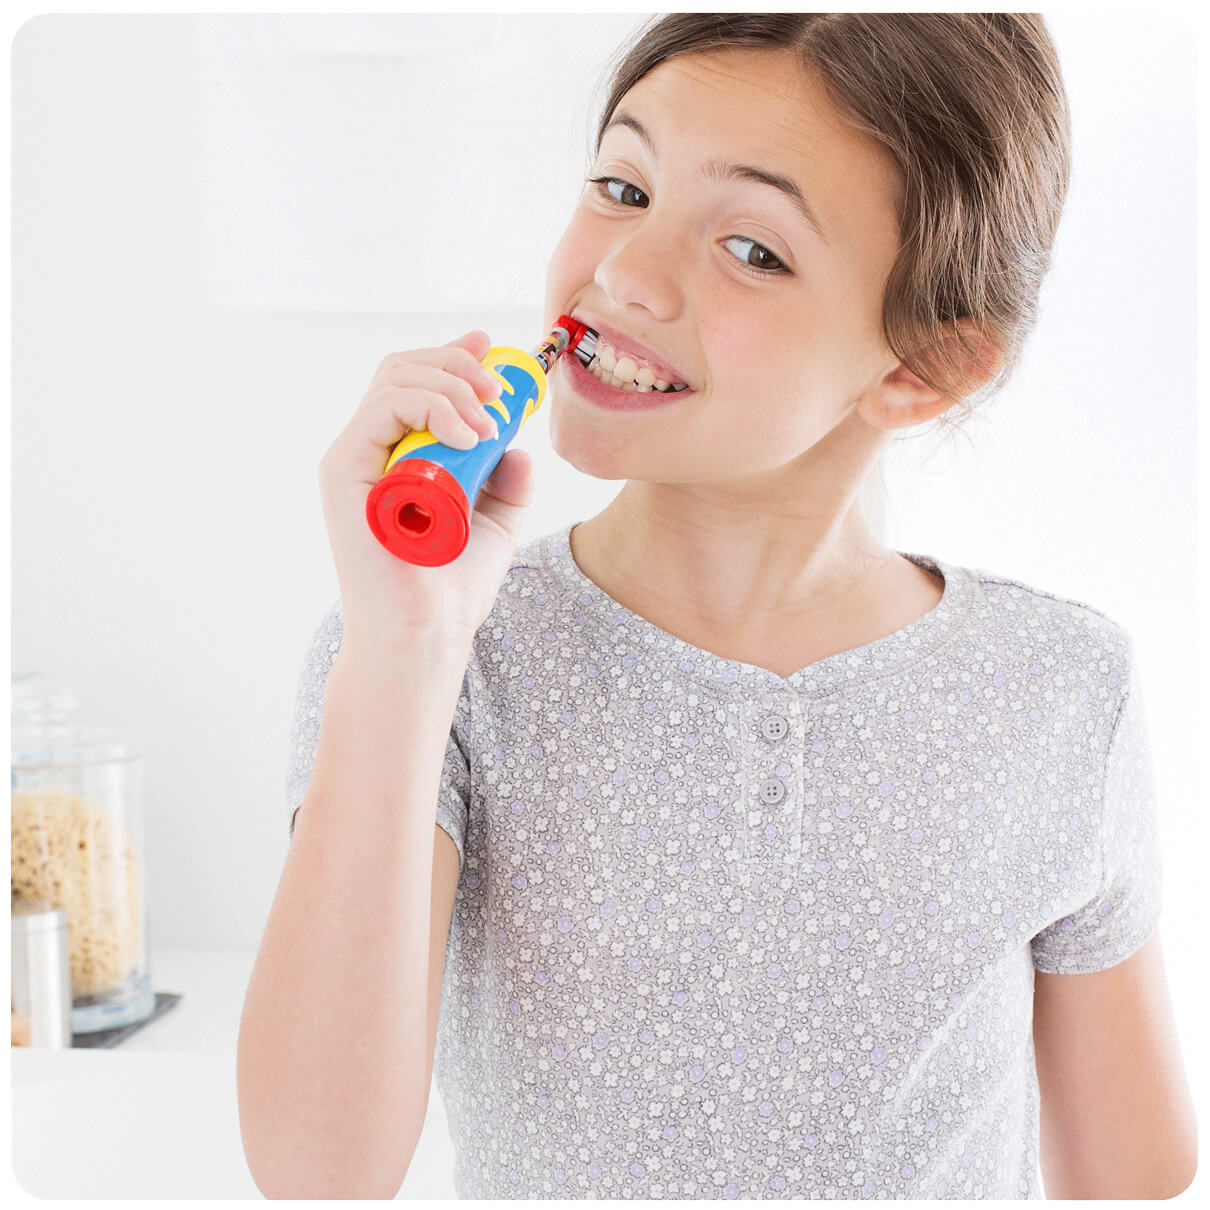 Oral-B Stages Power Princesses brosse à dents électrique rechargeable enfants